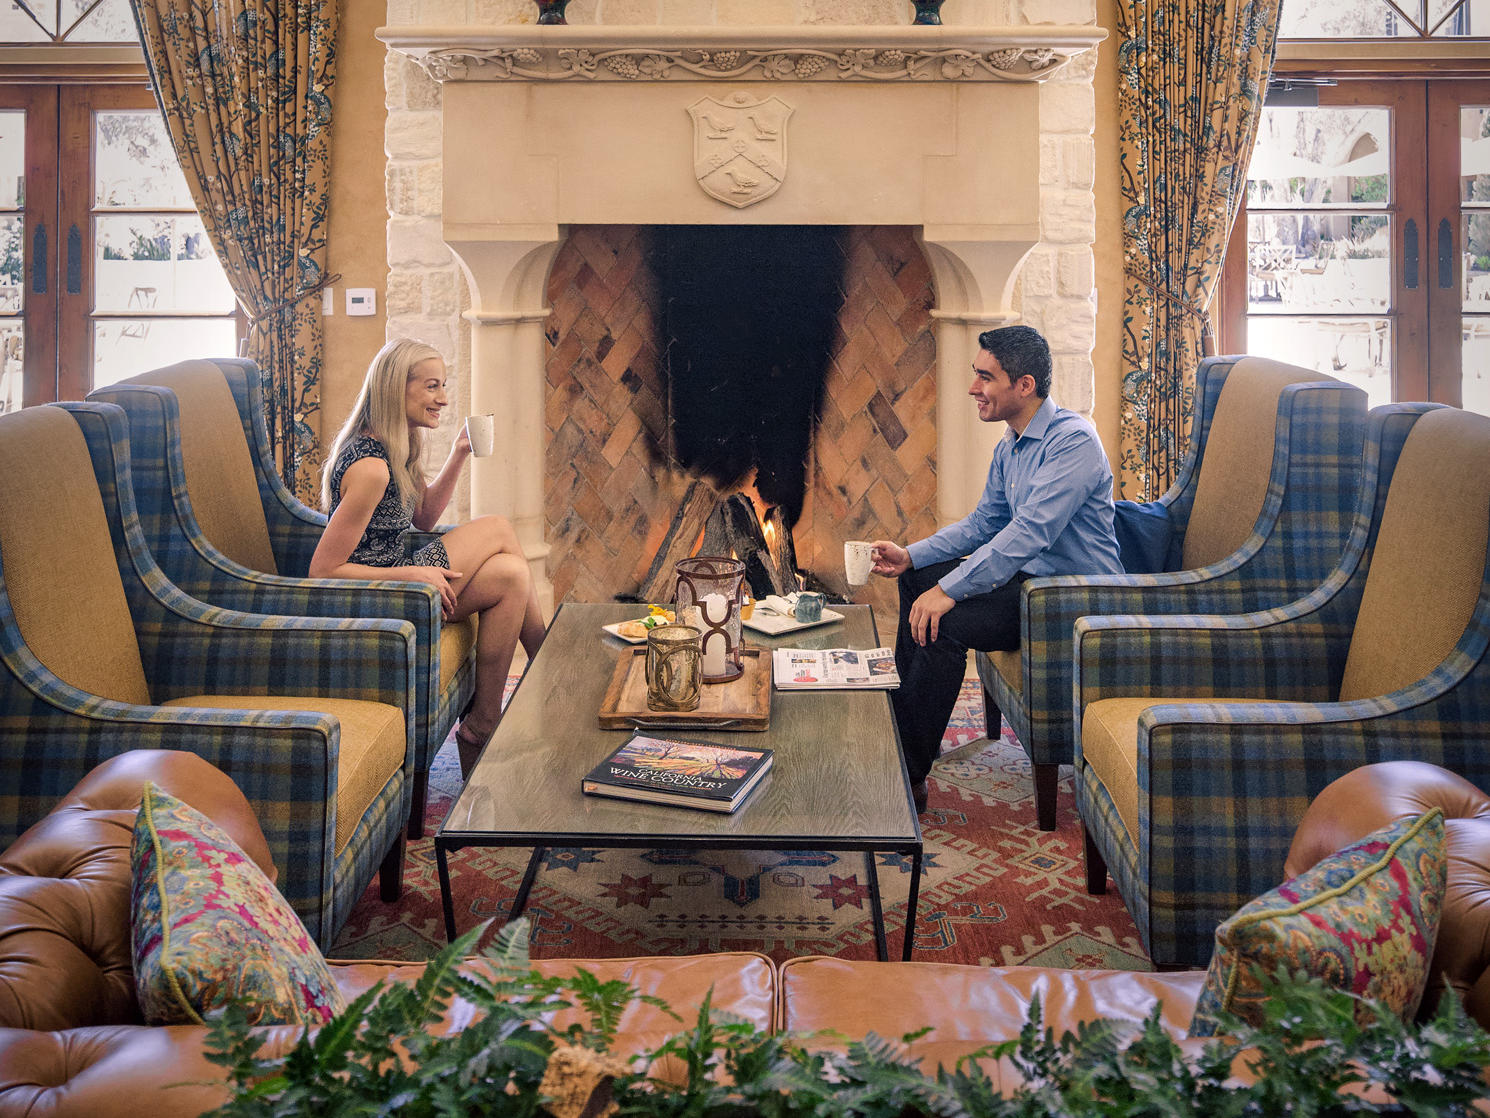 Man and woman sitting in front of fireplace drinking coffee